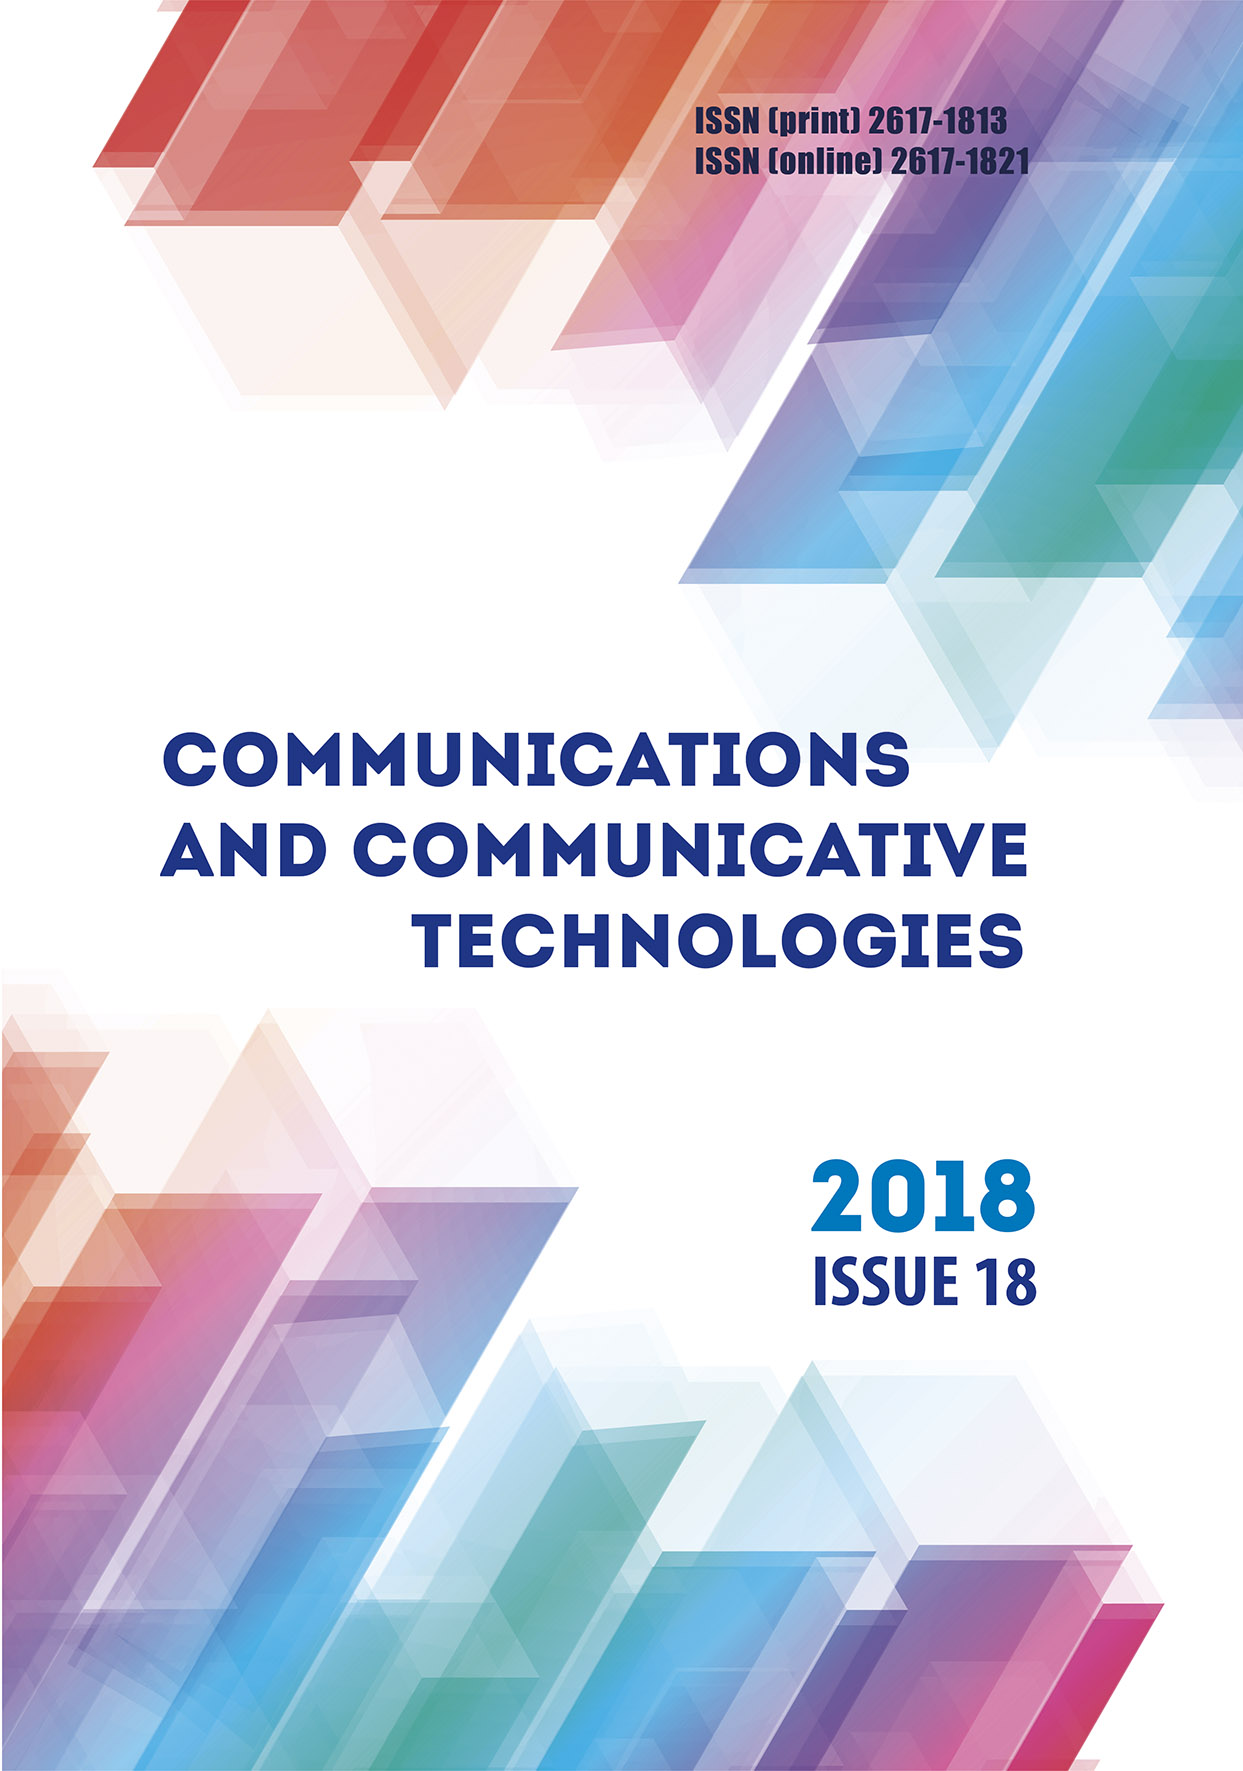 Communications and communicative technologies. 2018. Issue 18